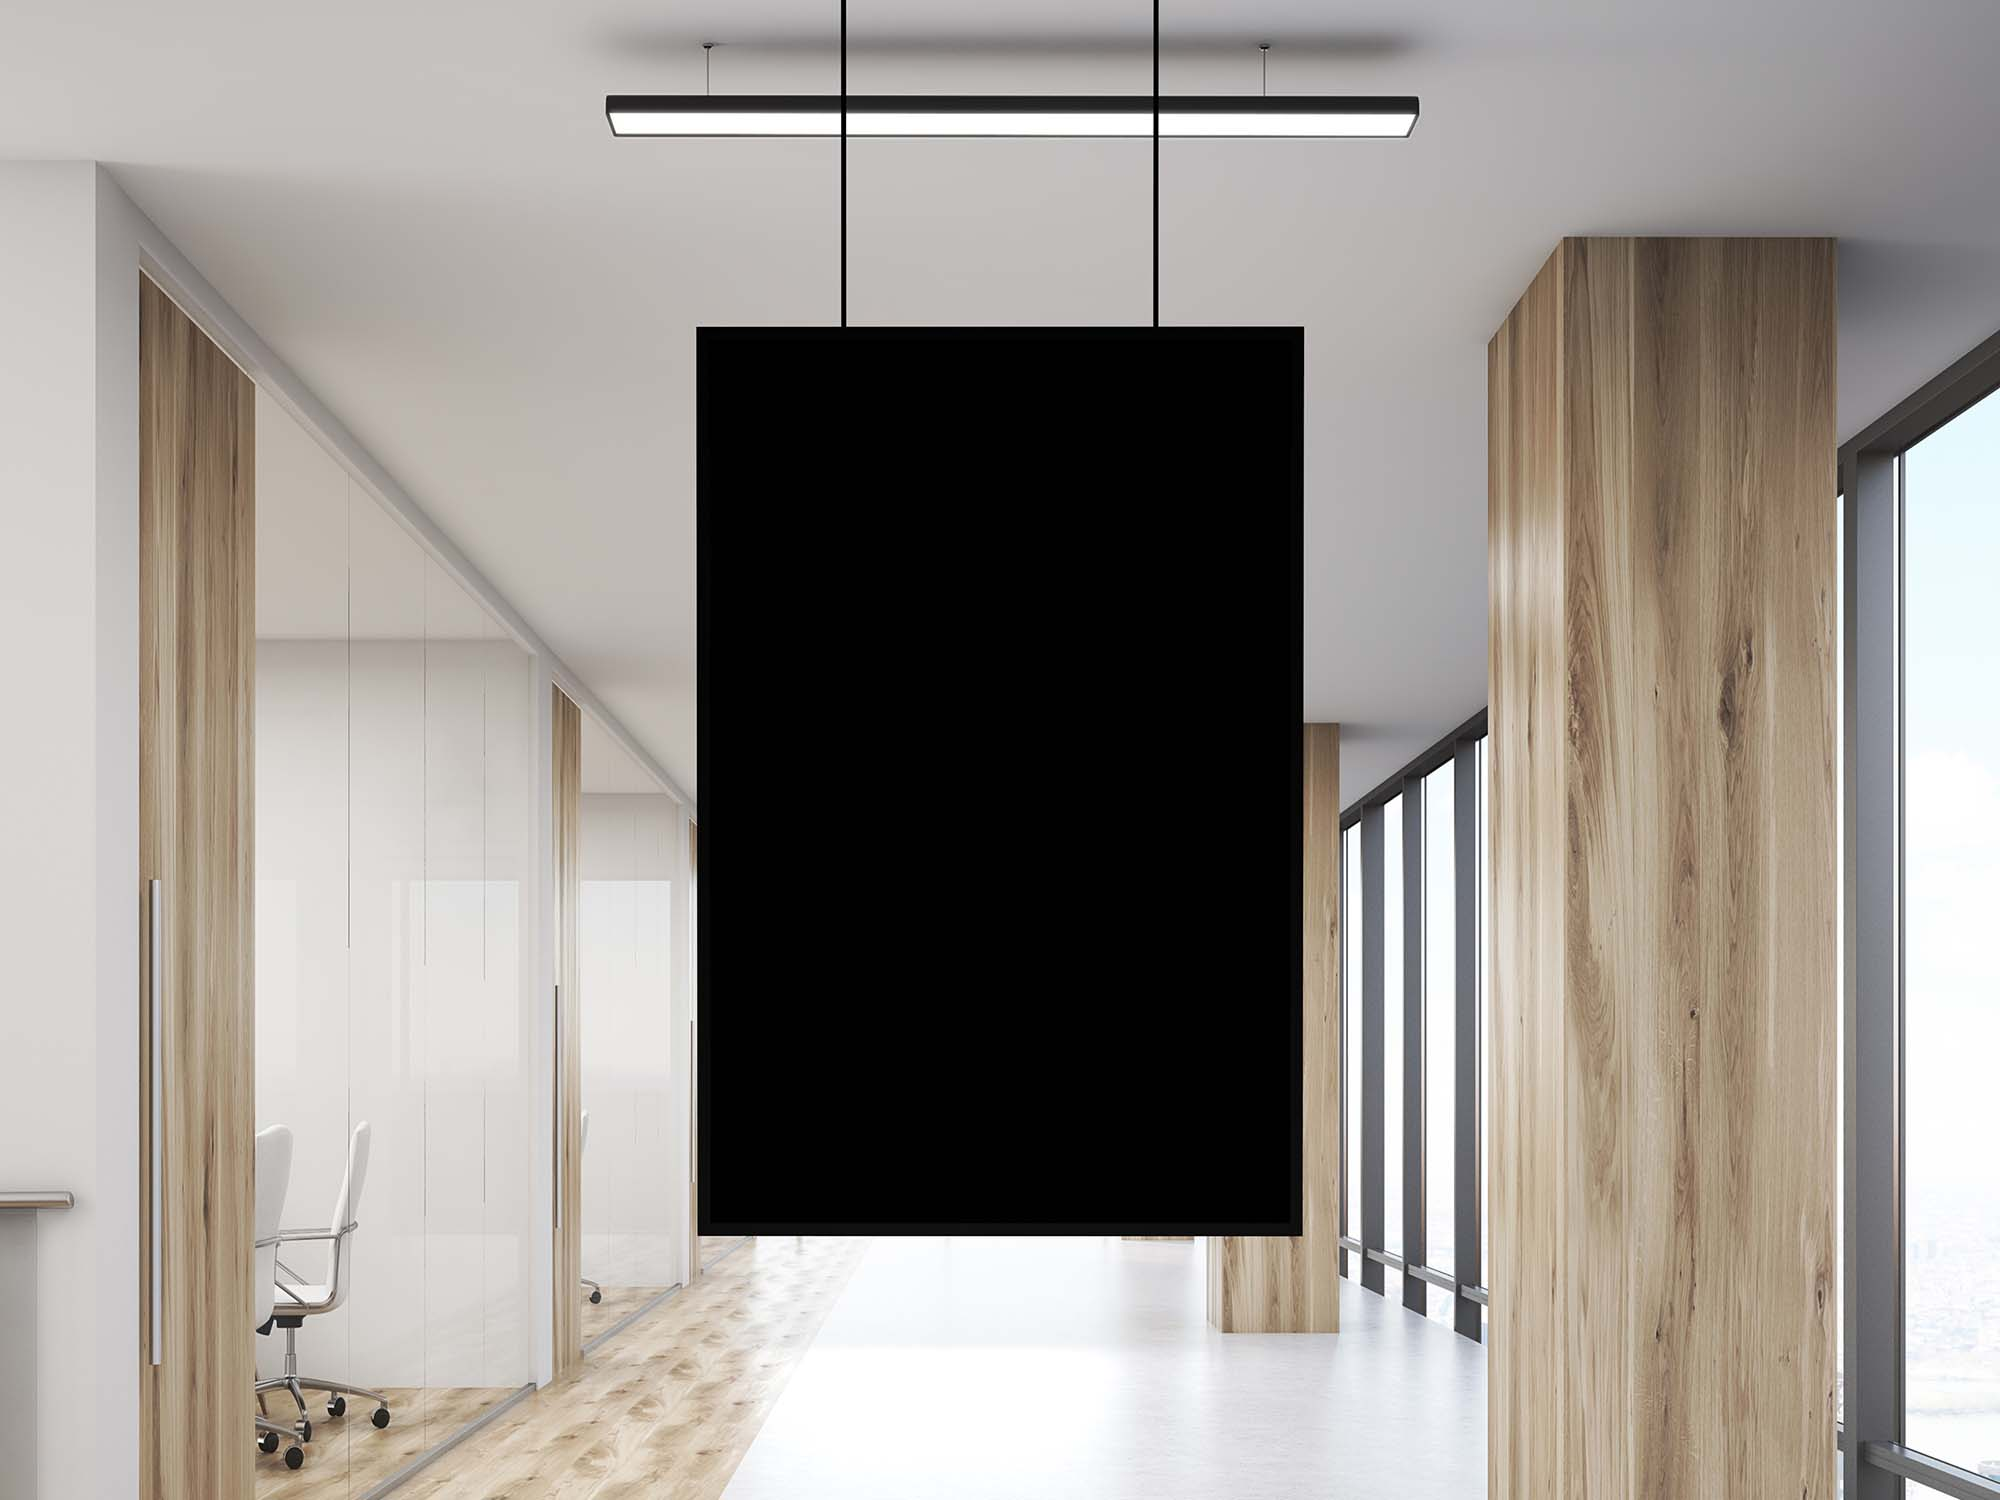 Office Indoor Hanging Poster Mockup PSD